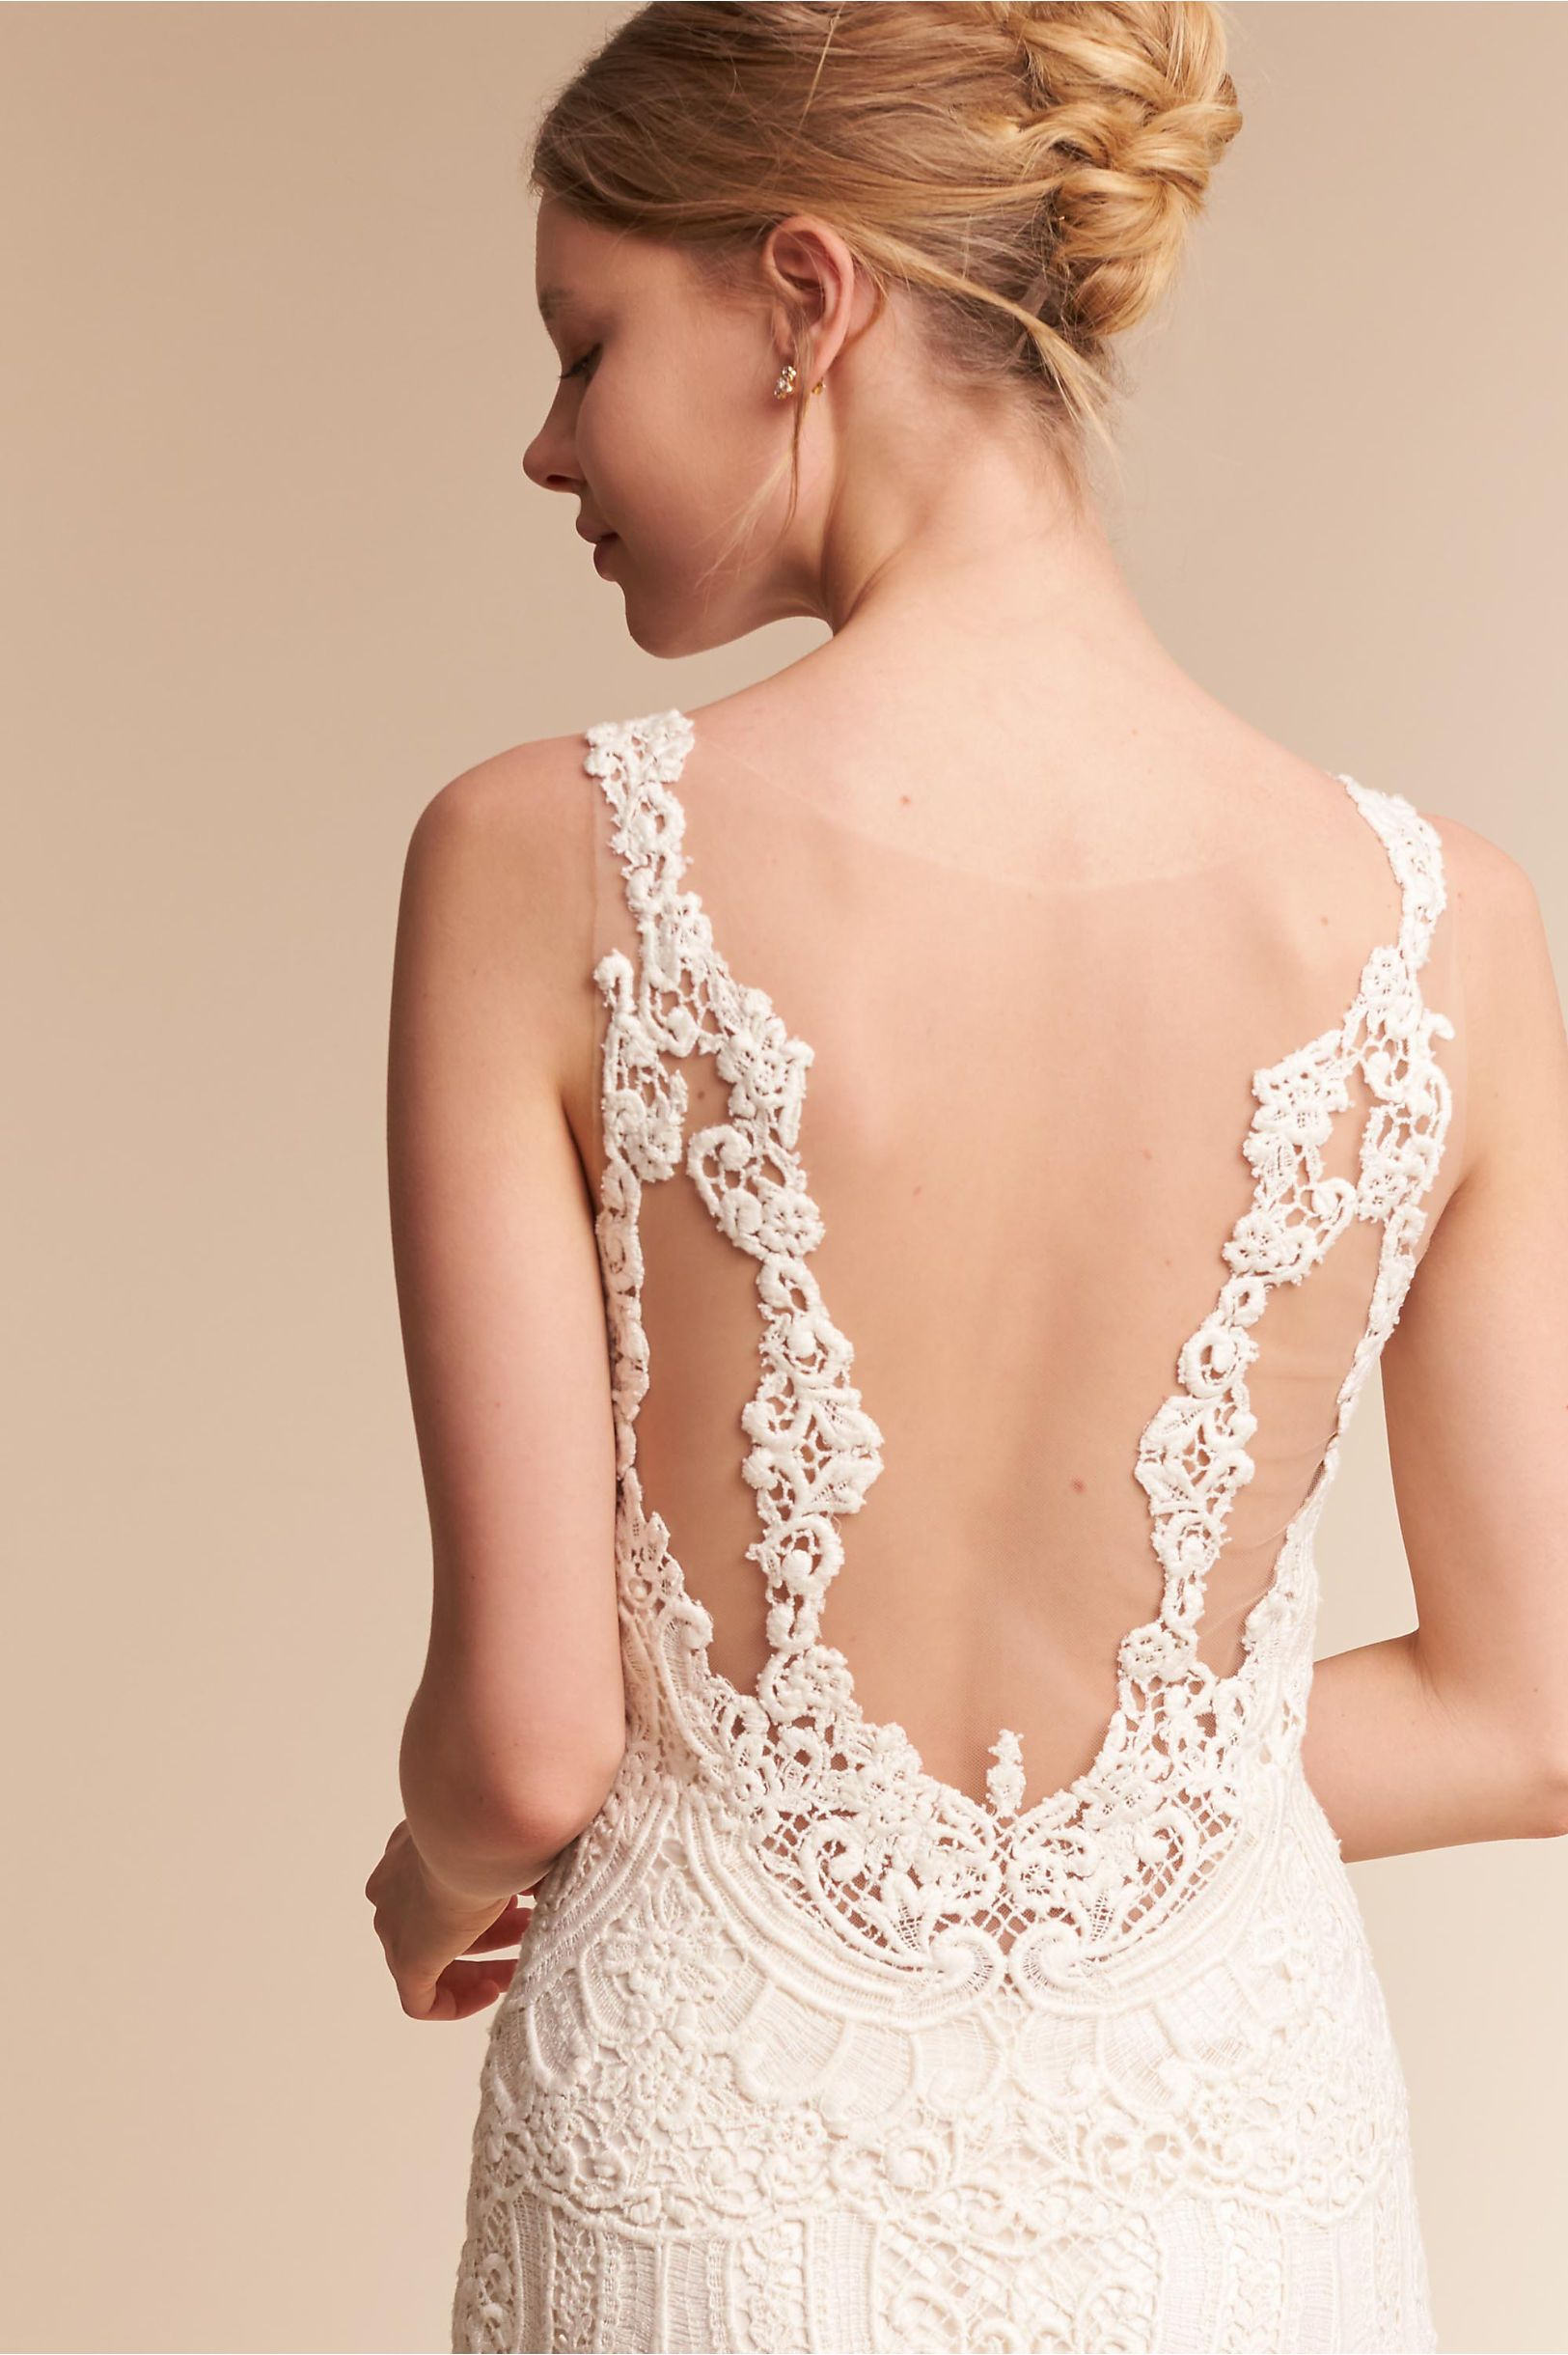 Atherton Gown BHLDN wedding dress Pinterest